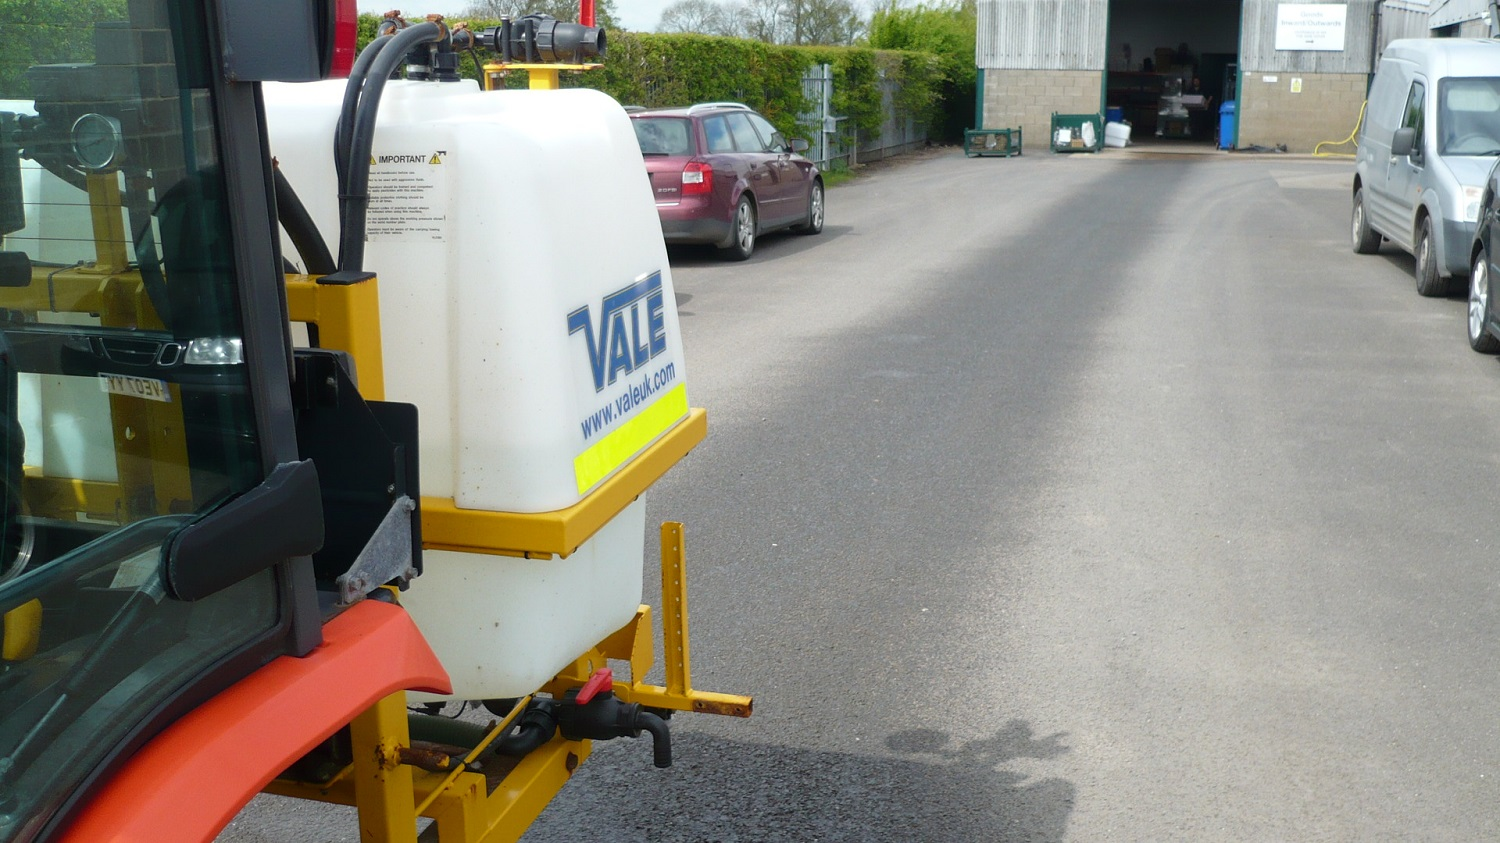 Liquid De-icerSnowbrush Mini-Tractor Combi - electrically controlled spraying nozzles including automatic stop/start and automatic sensors to control the application rate